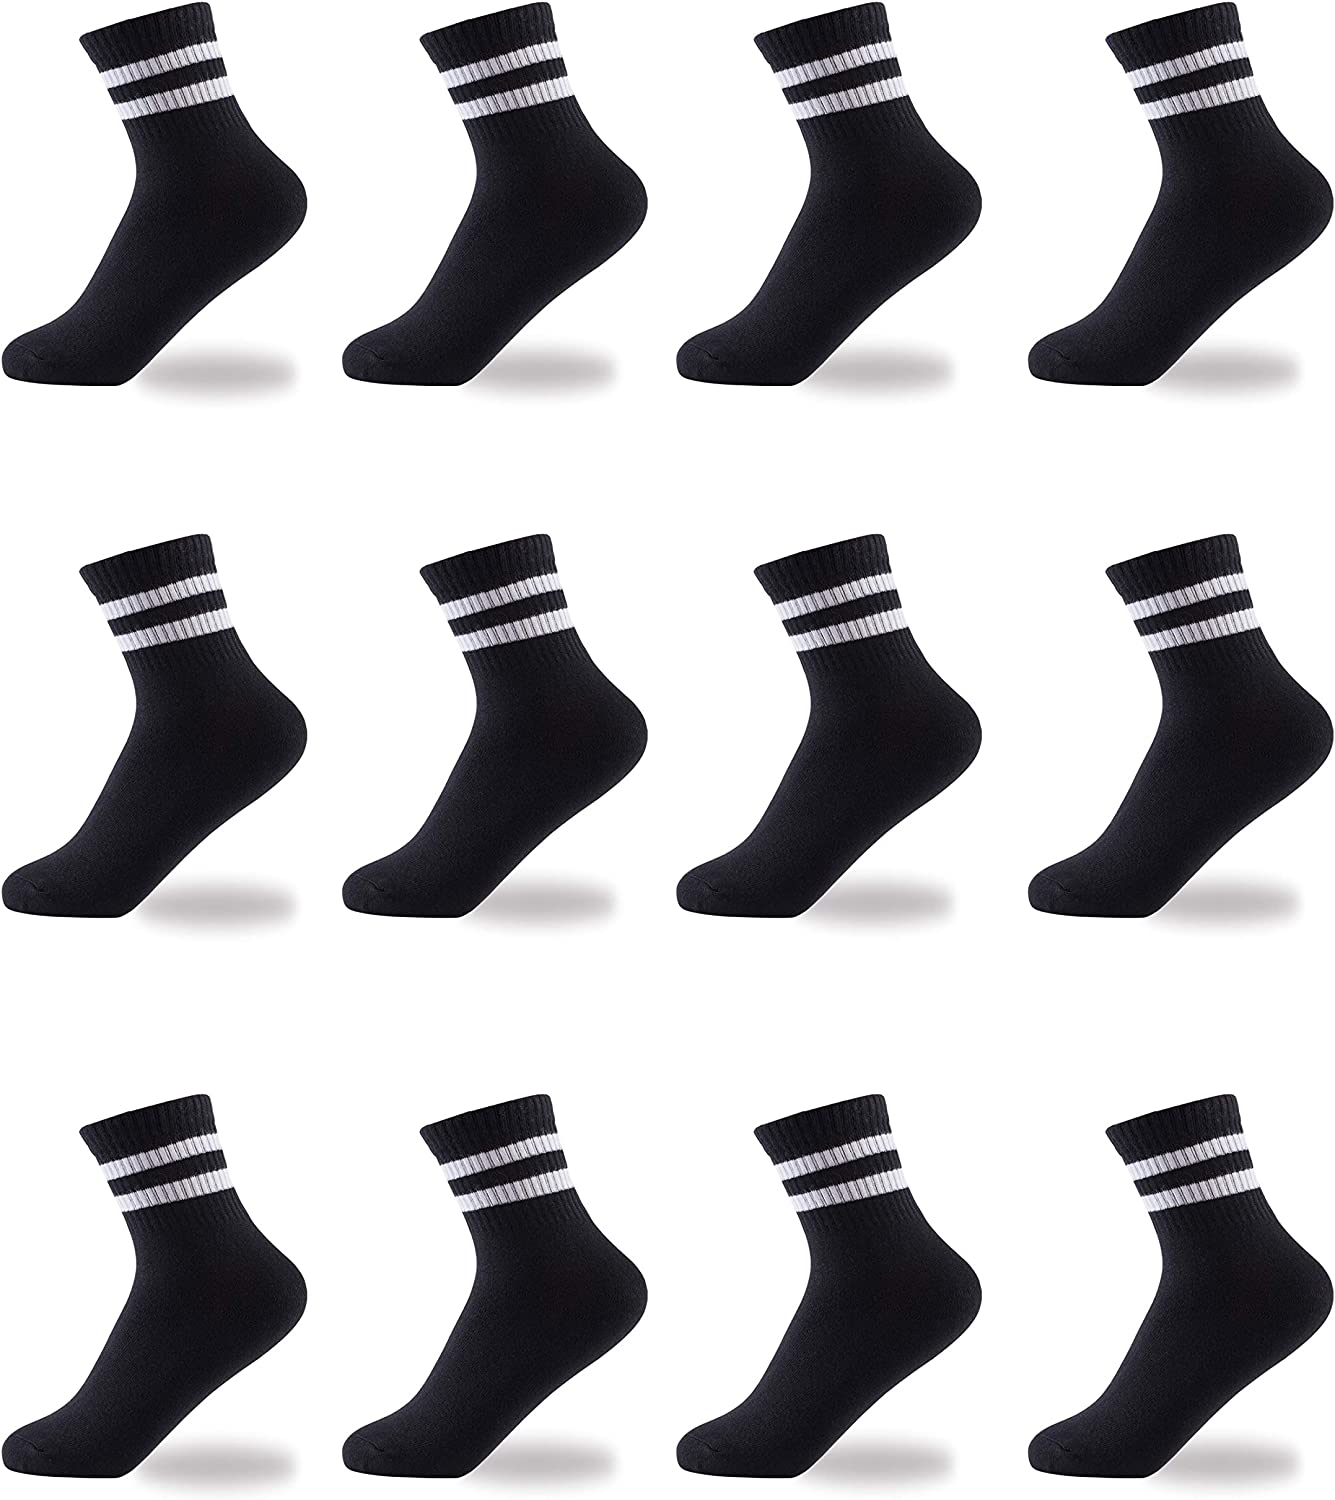 Oohmy Boys Socks Fit for 2-15 Years Old Boys and Girls Cotton Athletic Ankle Socks for Toddler Kids and Big Kids